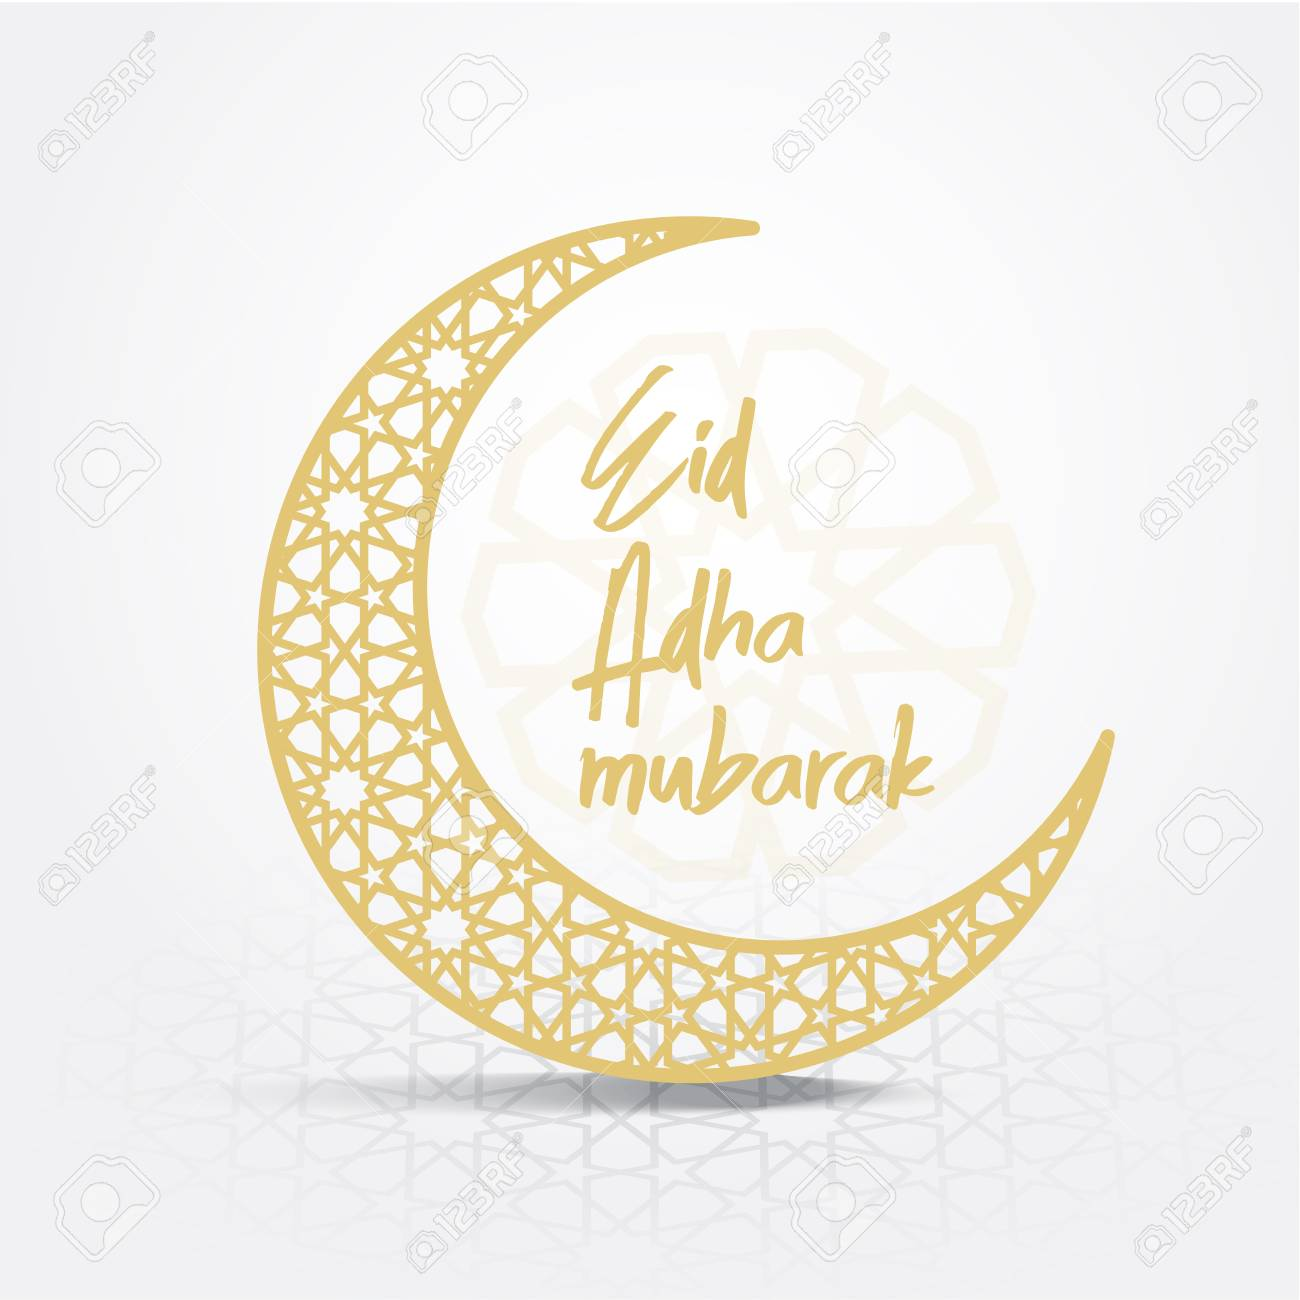 eid al adha mubarak backgrounds crescent moon vector with arabic royalty free cliparts vectors and stock illustration image 106376678 eid al adha mubarak backgrounds crescent moon vector with arabic